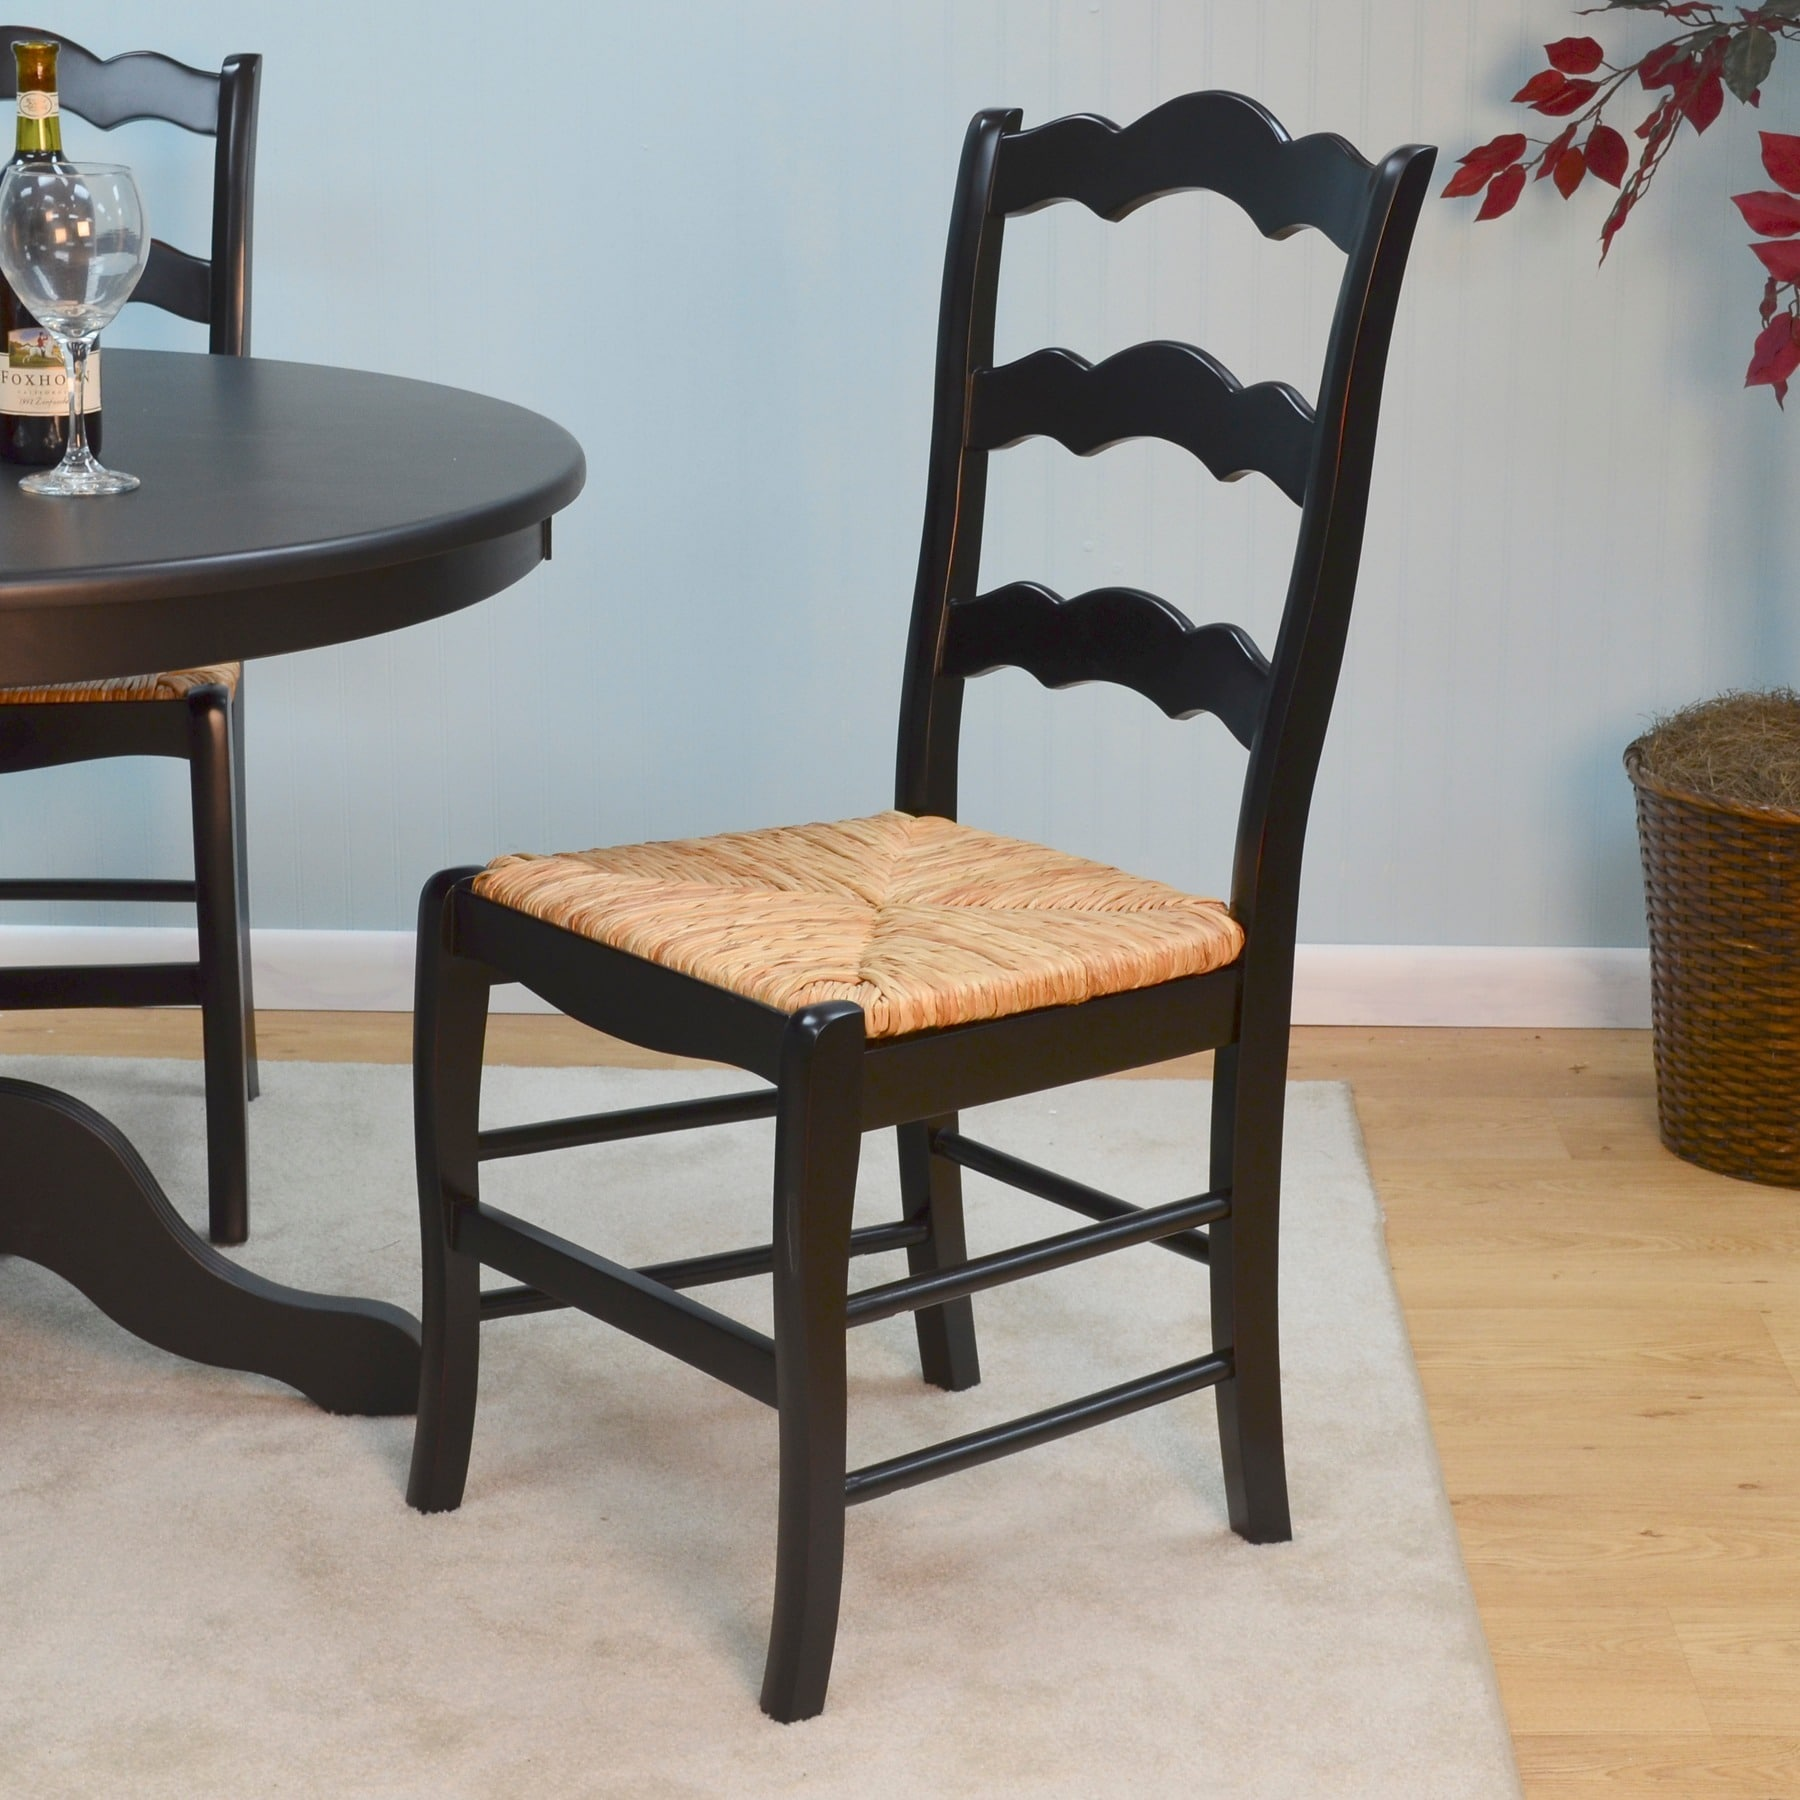 Shop Chambery Ladder Back Chair - On Sale - Free Shipping Today ...